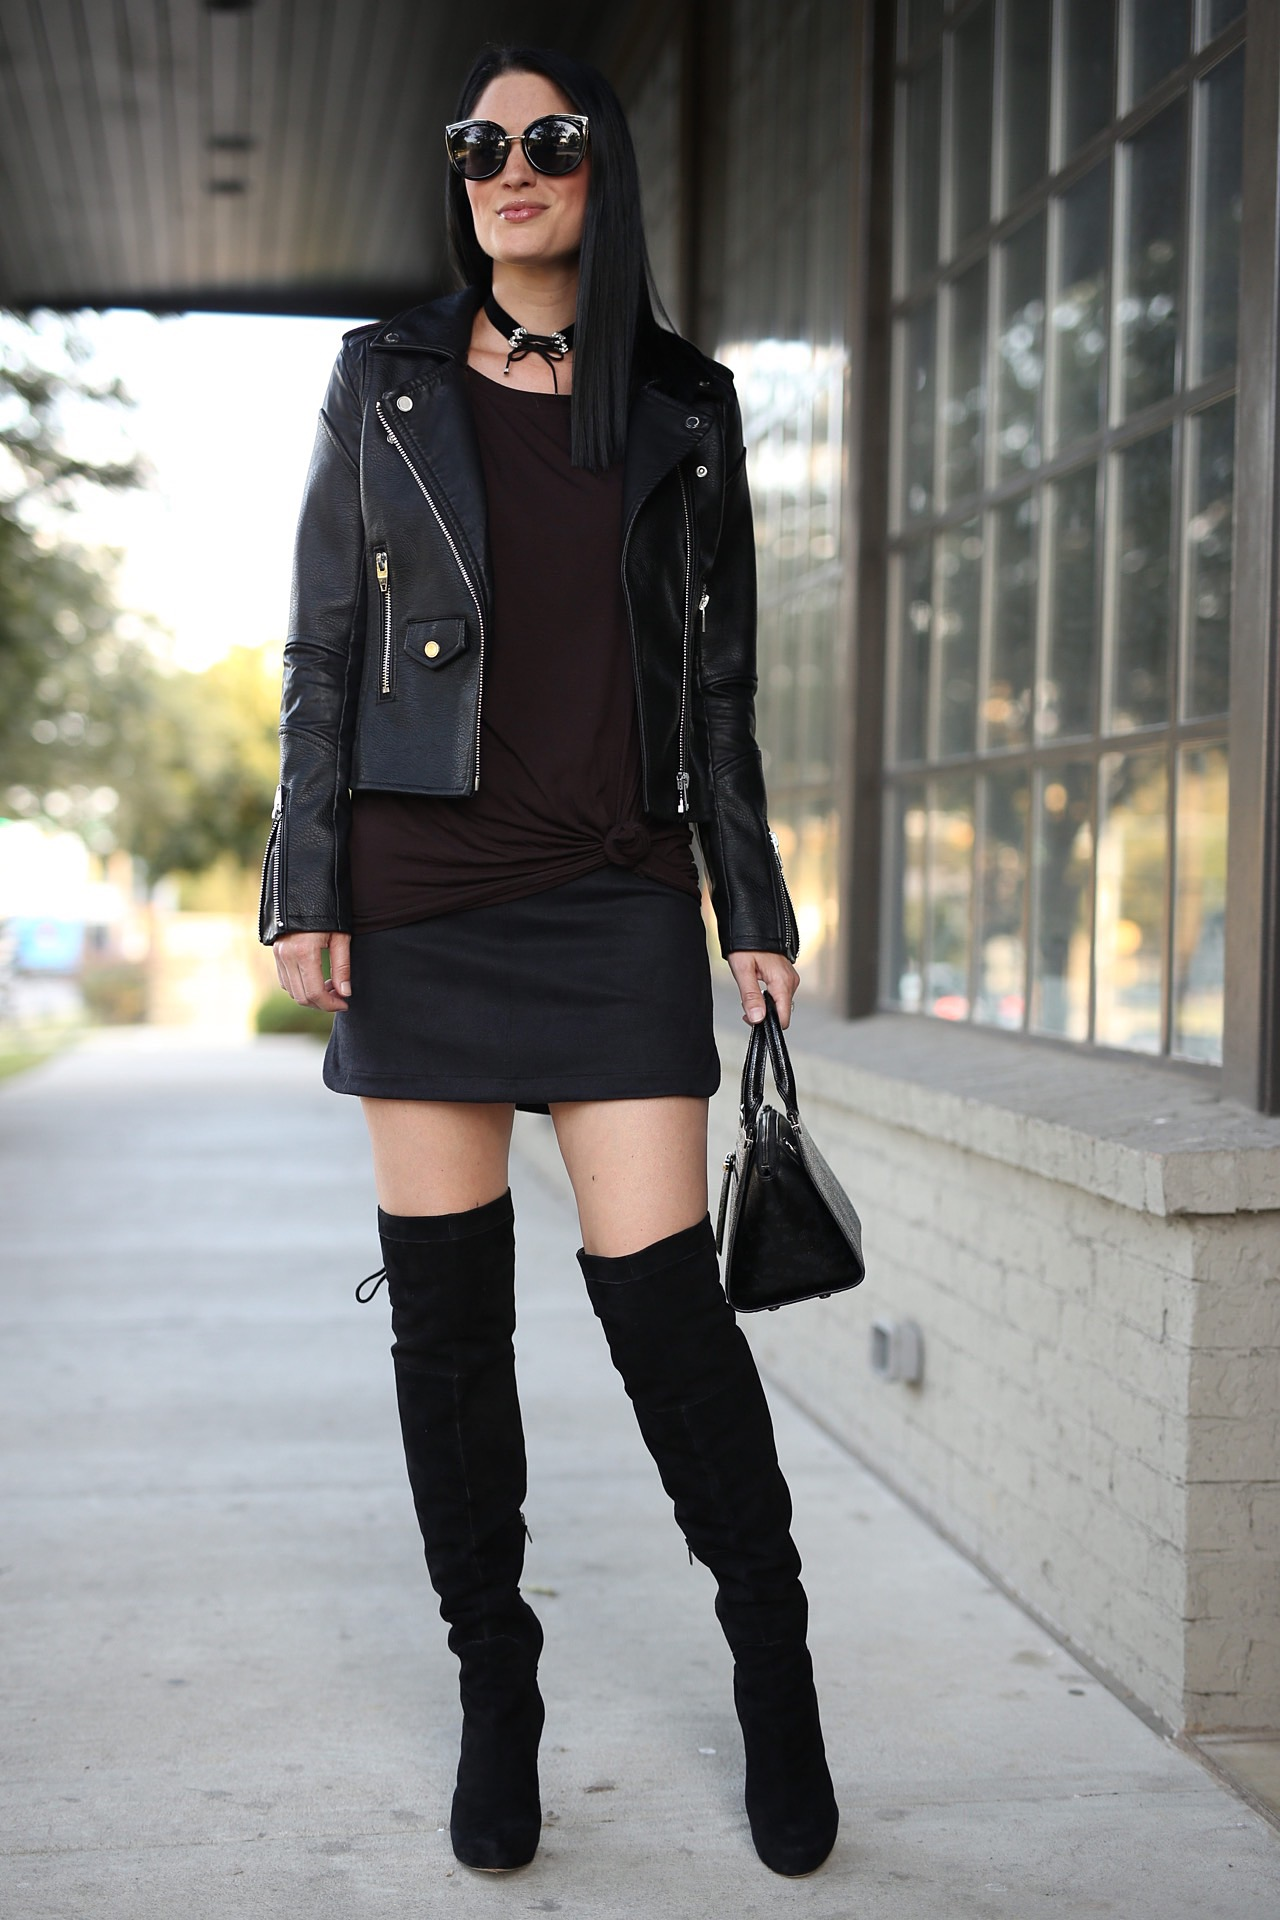 Black Leather Jacket, black mini skirt, black OTK boots | how to style a black mini skirt | how to style black OTK boots | how to style a leather jacket | all black style | fall fashion tips | fall outfit ideas | fall style tips | what to wear for fall | cool weather fashion | fashion for fall | style tips for fall | outfit ideas for fall || Dressed to Kill #blackminiskirt #leatherjacket #otkboots